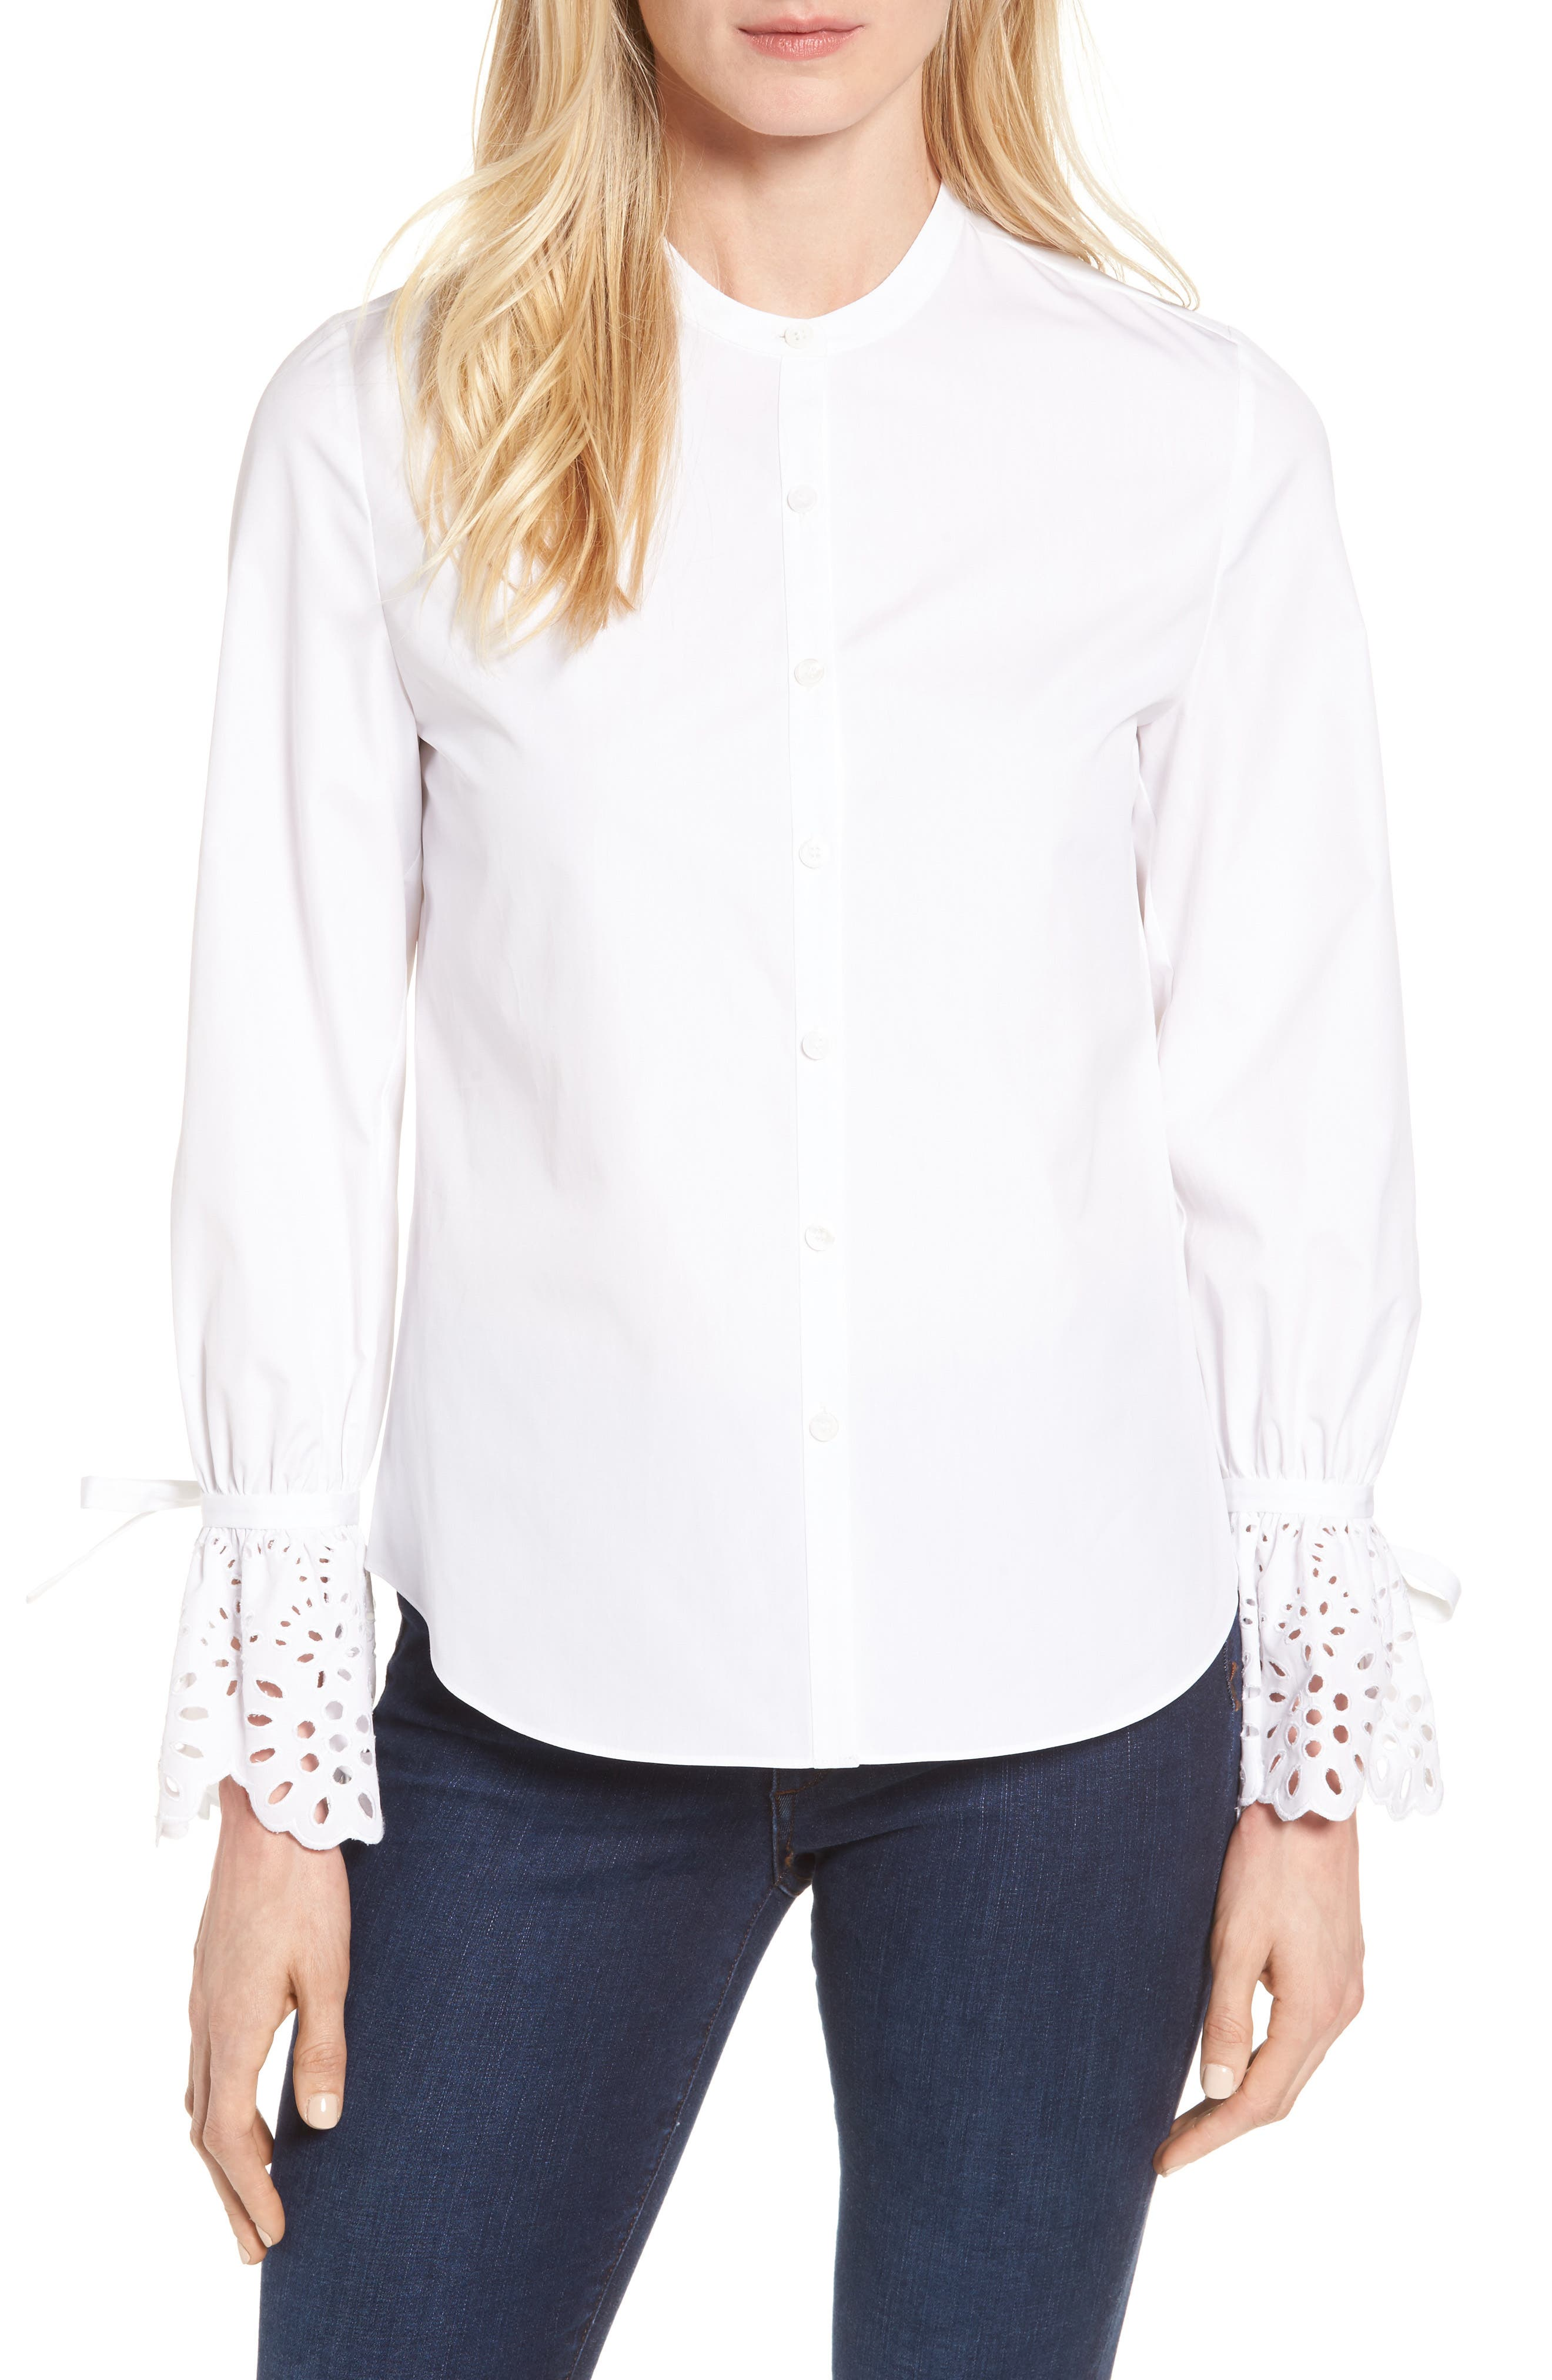 Alternate Image 1 Selected - Nordstrom Signature Eyelet Cuff Poplin Blouse